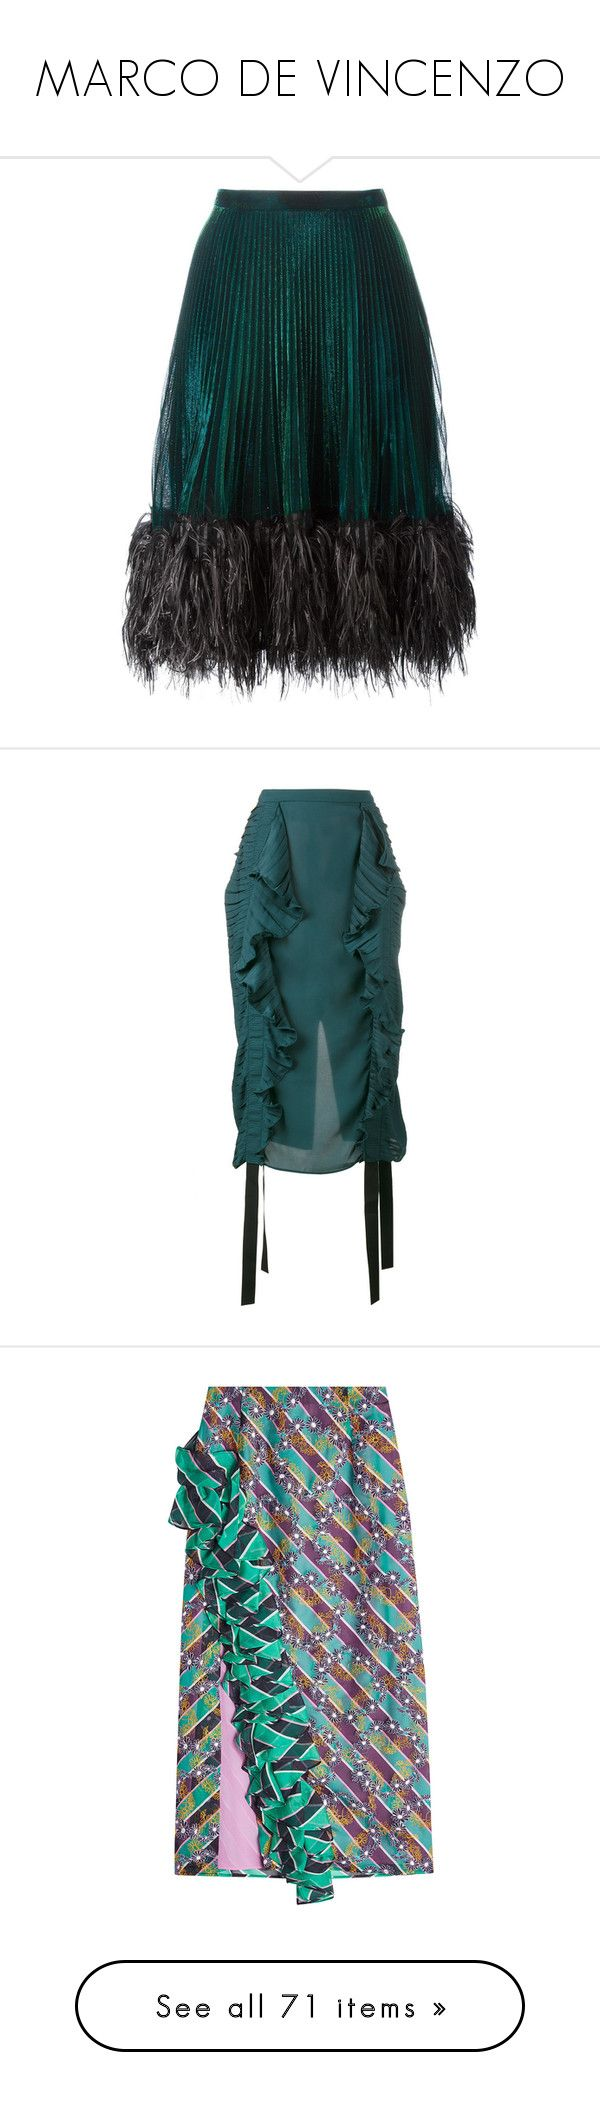 """""""MARCO DE VINCENZO"""" by mari-sv ❤ liked on Polyvore featuring skirts, marco de vincenzo, green, pleated skirt, green skirt, knee length pleated skirt, green pleated skirt, ruched skirt, green pencil skirt and ruffled skirts"""